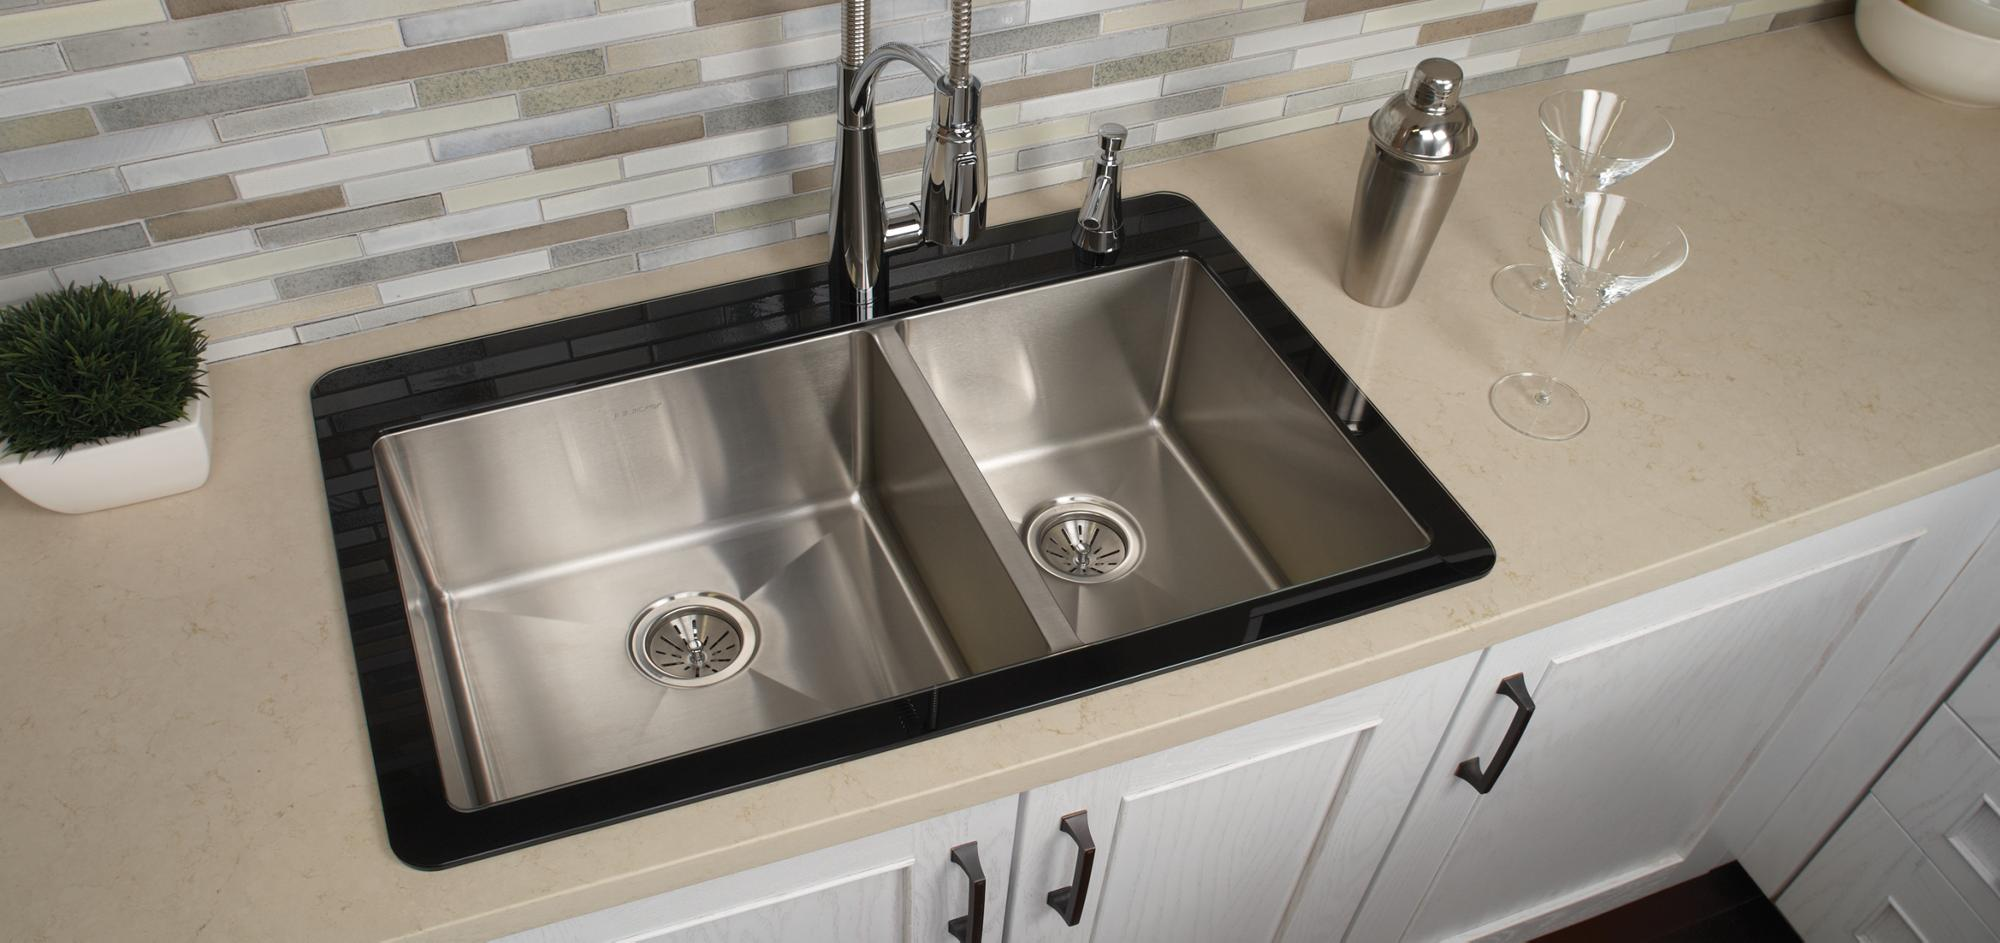 ELKAY Crosstown Sinks - Kitchen sink models